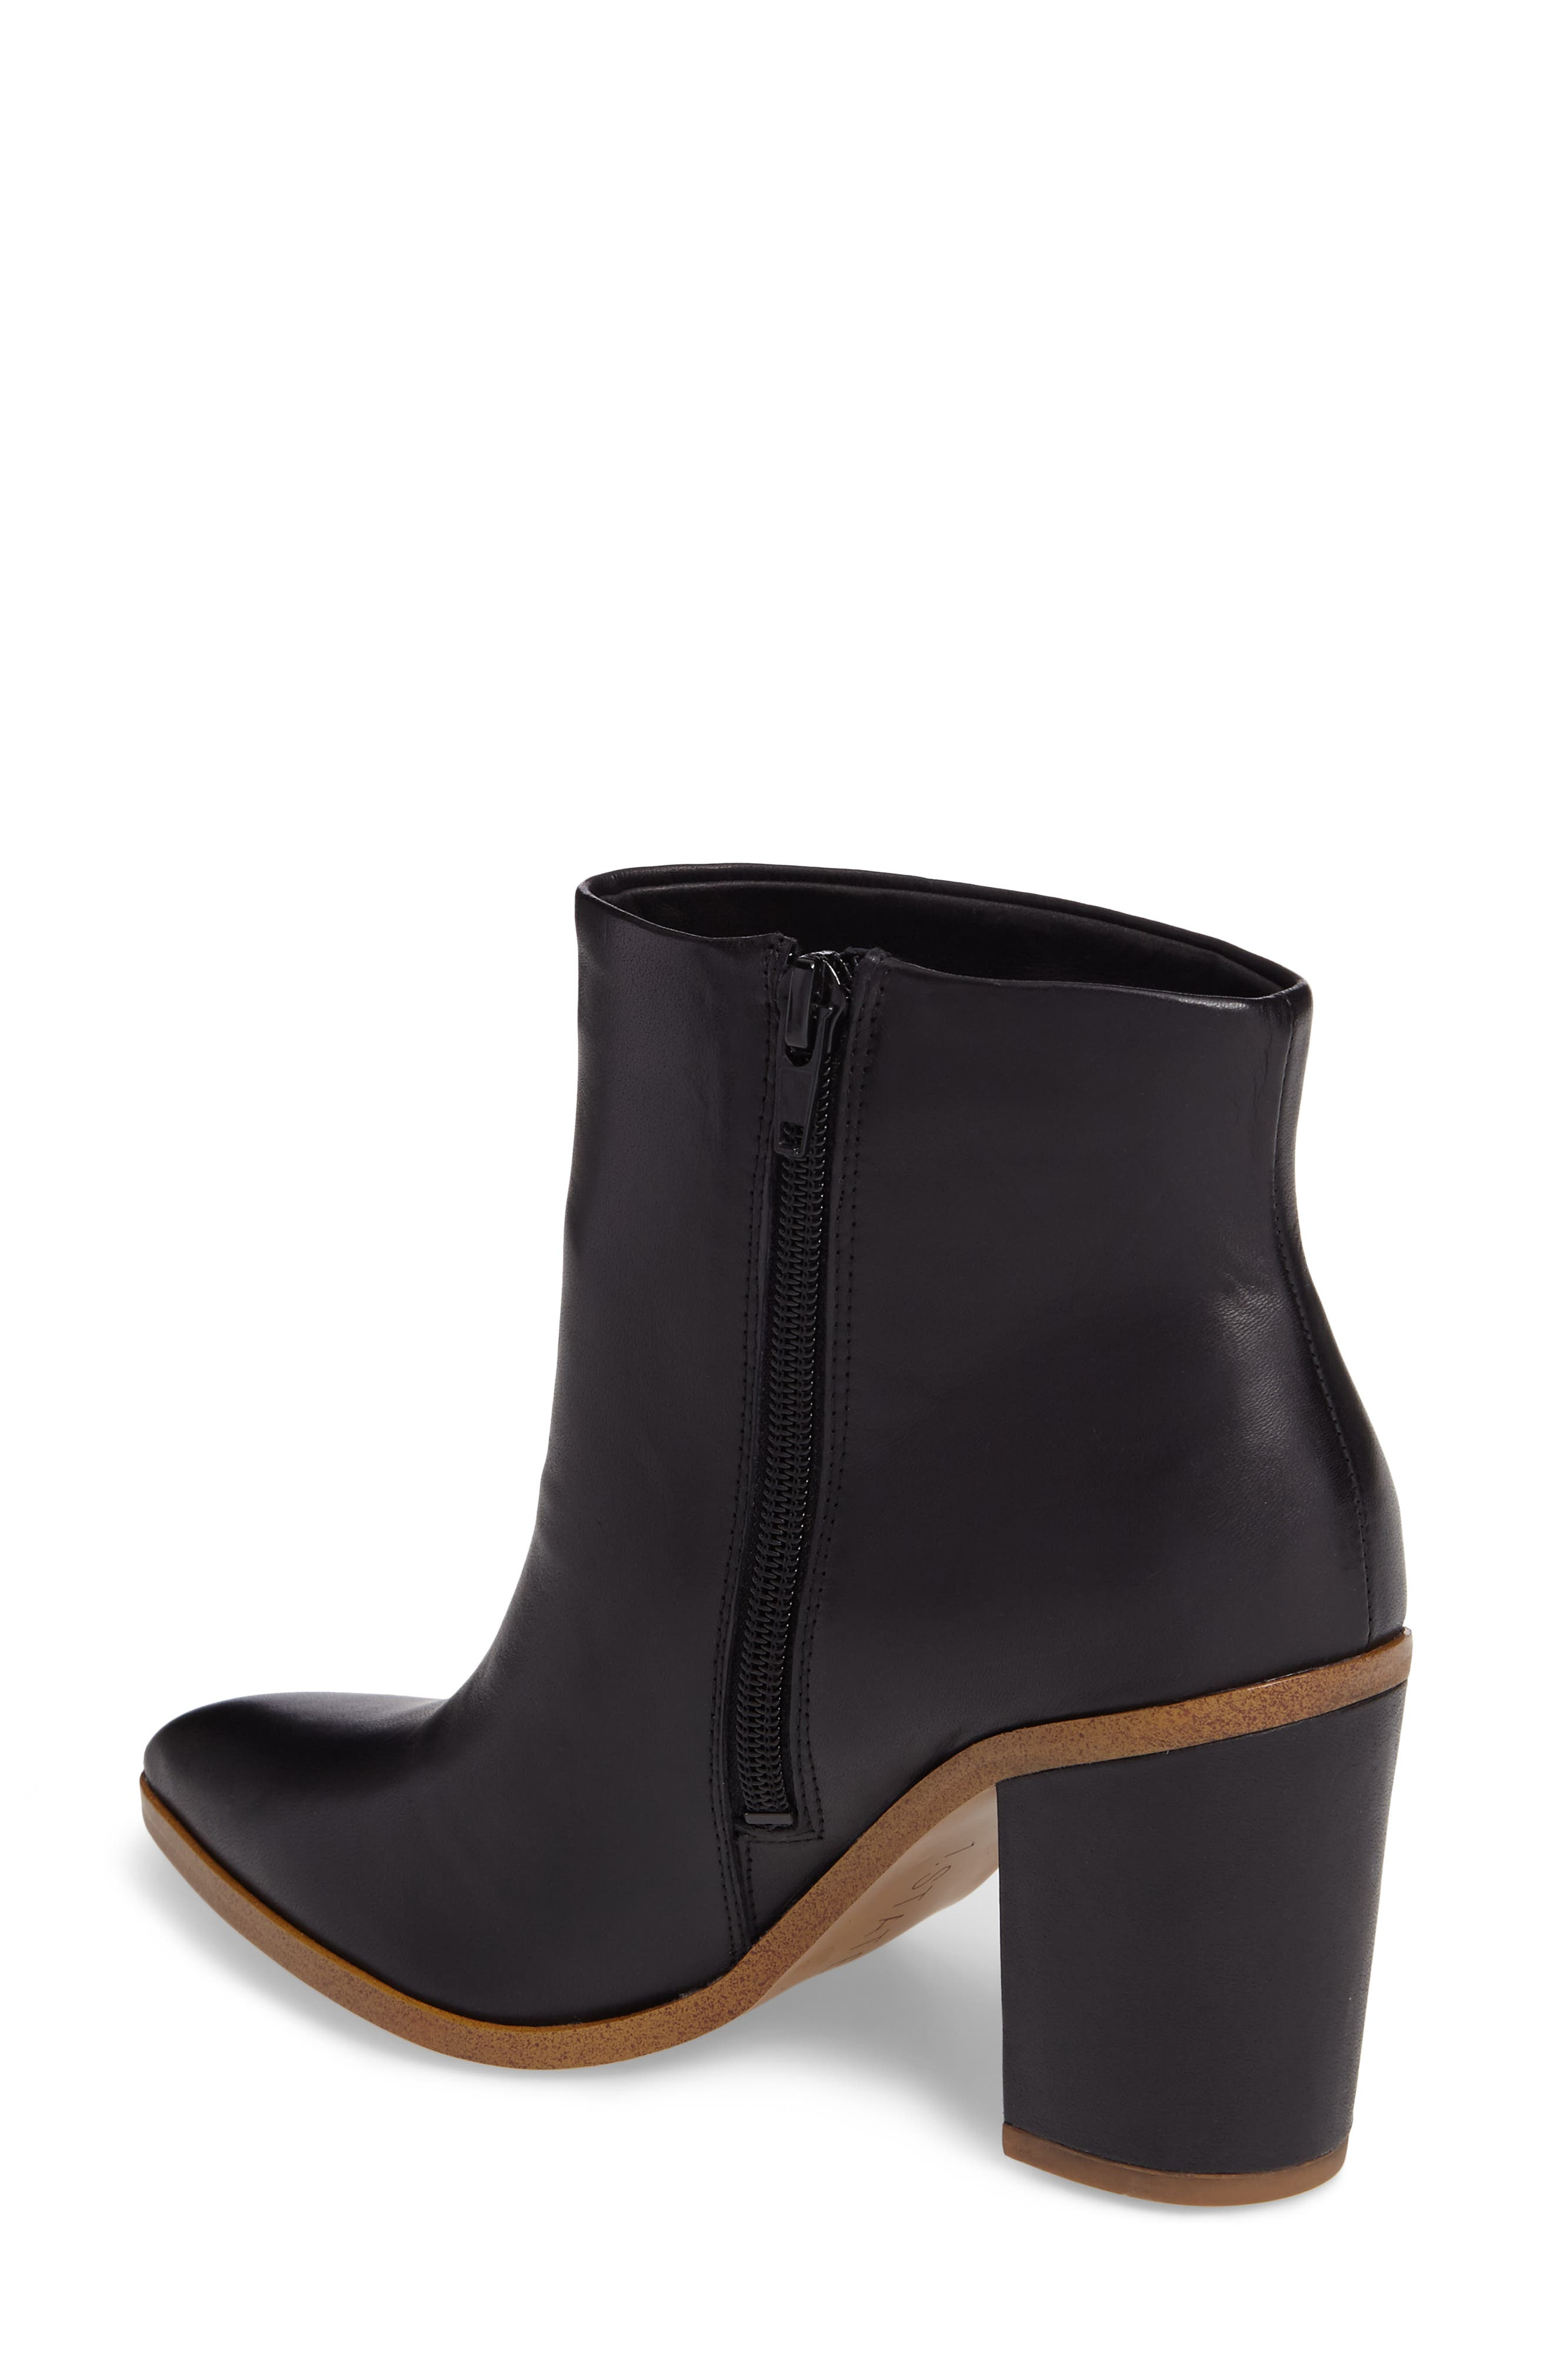 Paven Pointy Toe Bootie,                             Alternate thumbnail 2, color,                             001